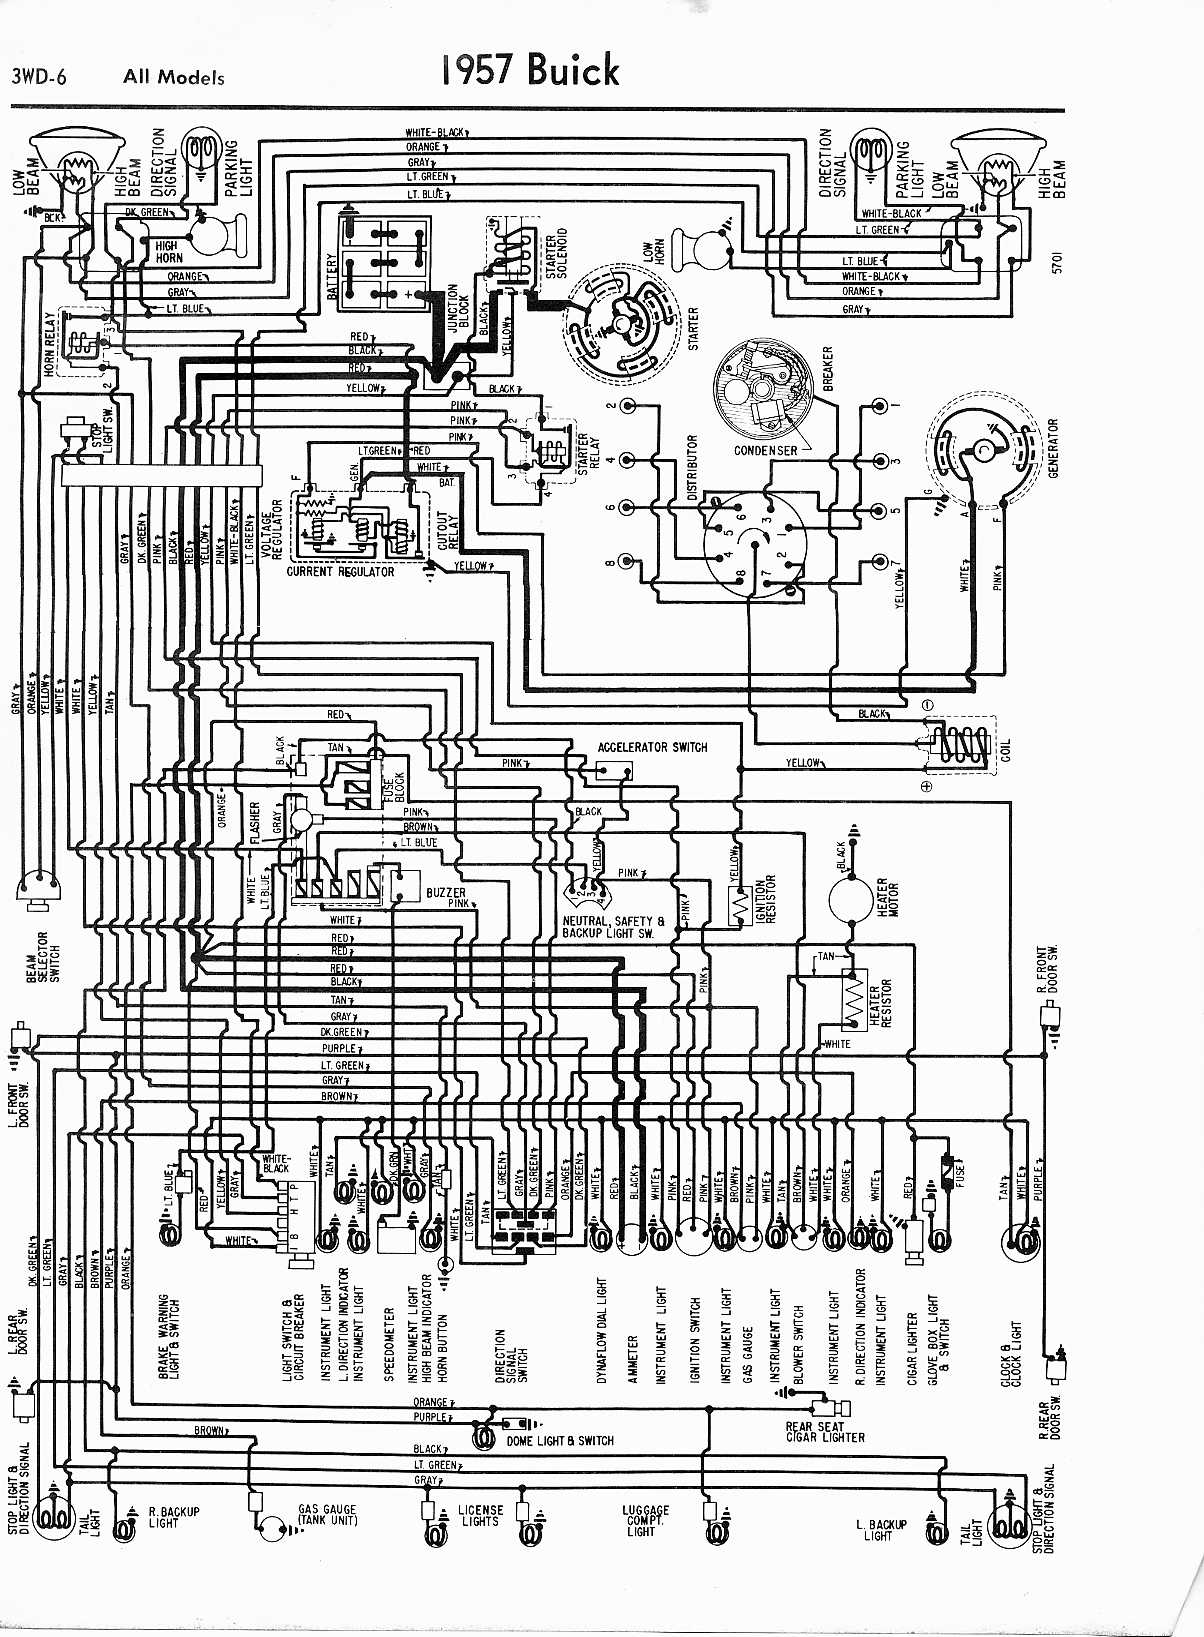 Buick Wiring Diagrams Diagram Will Be A Thing 2003 Rendezvous Stereo 1957 1965 Rh Oldcarmanualproject Com